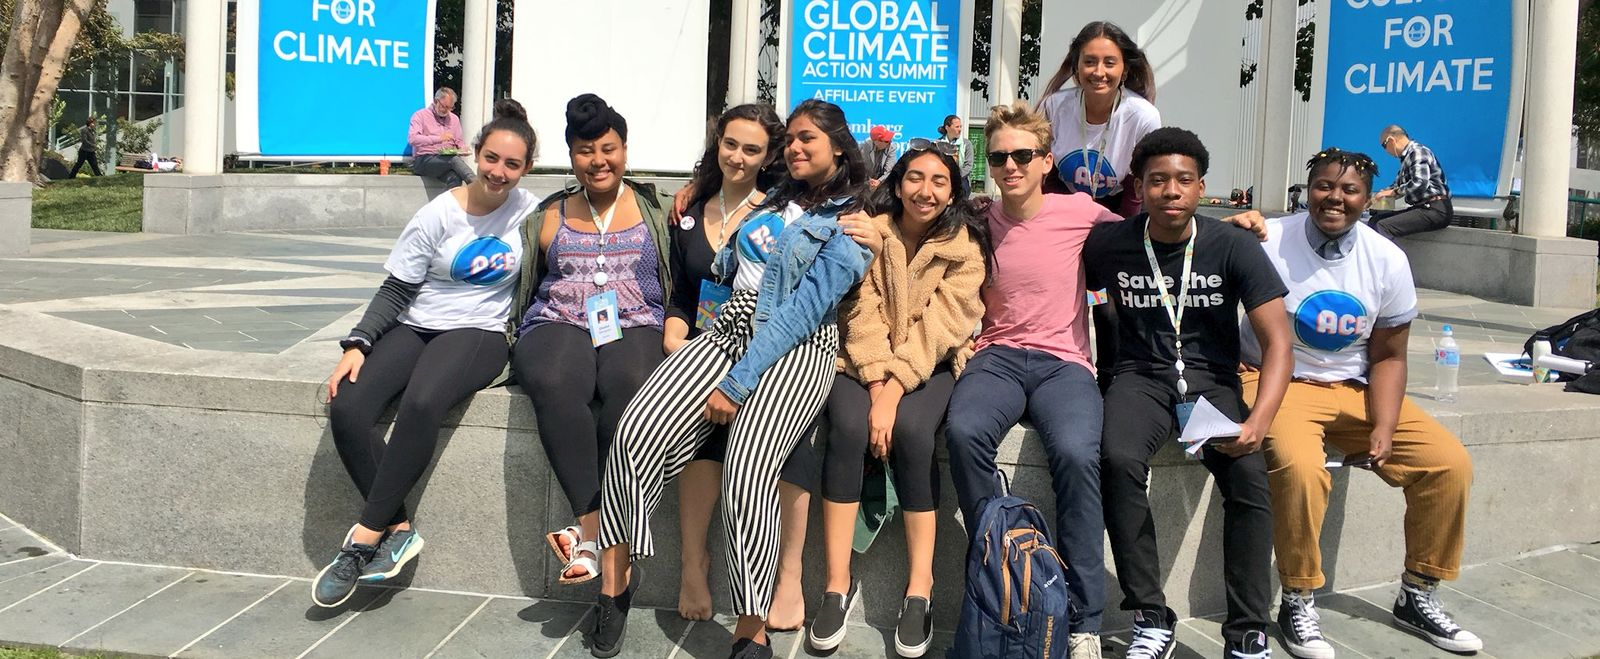 Teen speakers at the global climate action summit gather for a photo.